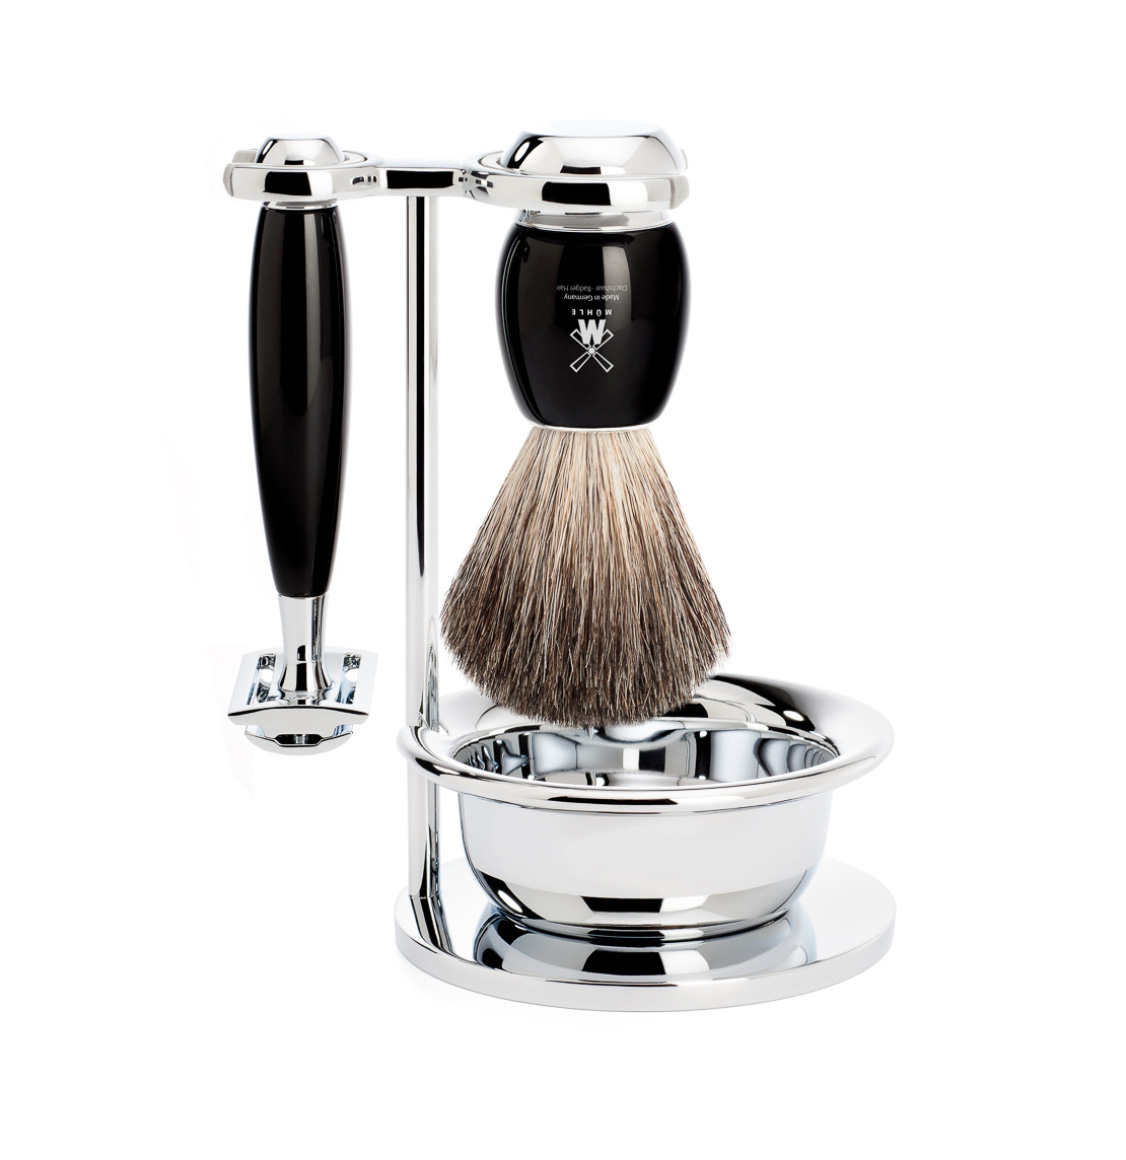 Muhle Vivo Shaving Set Pure Badger Brush With Safety Razor and Bowl